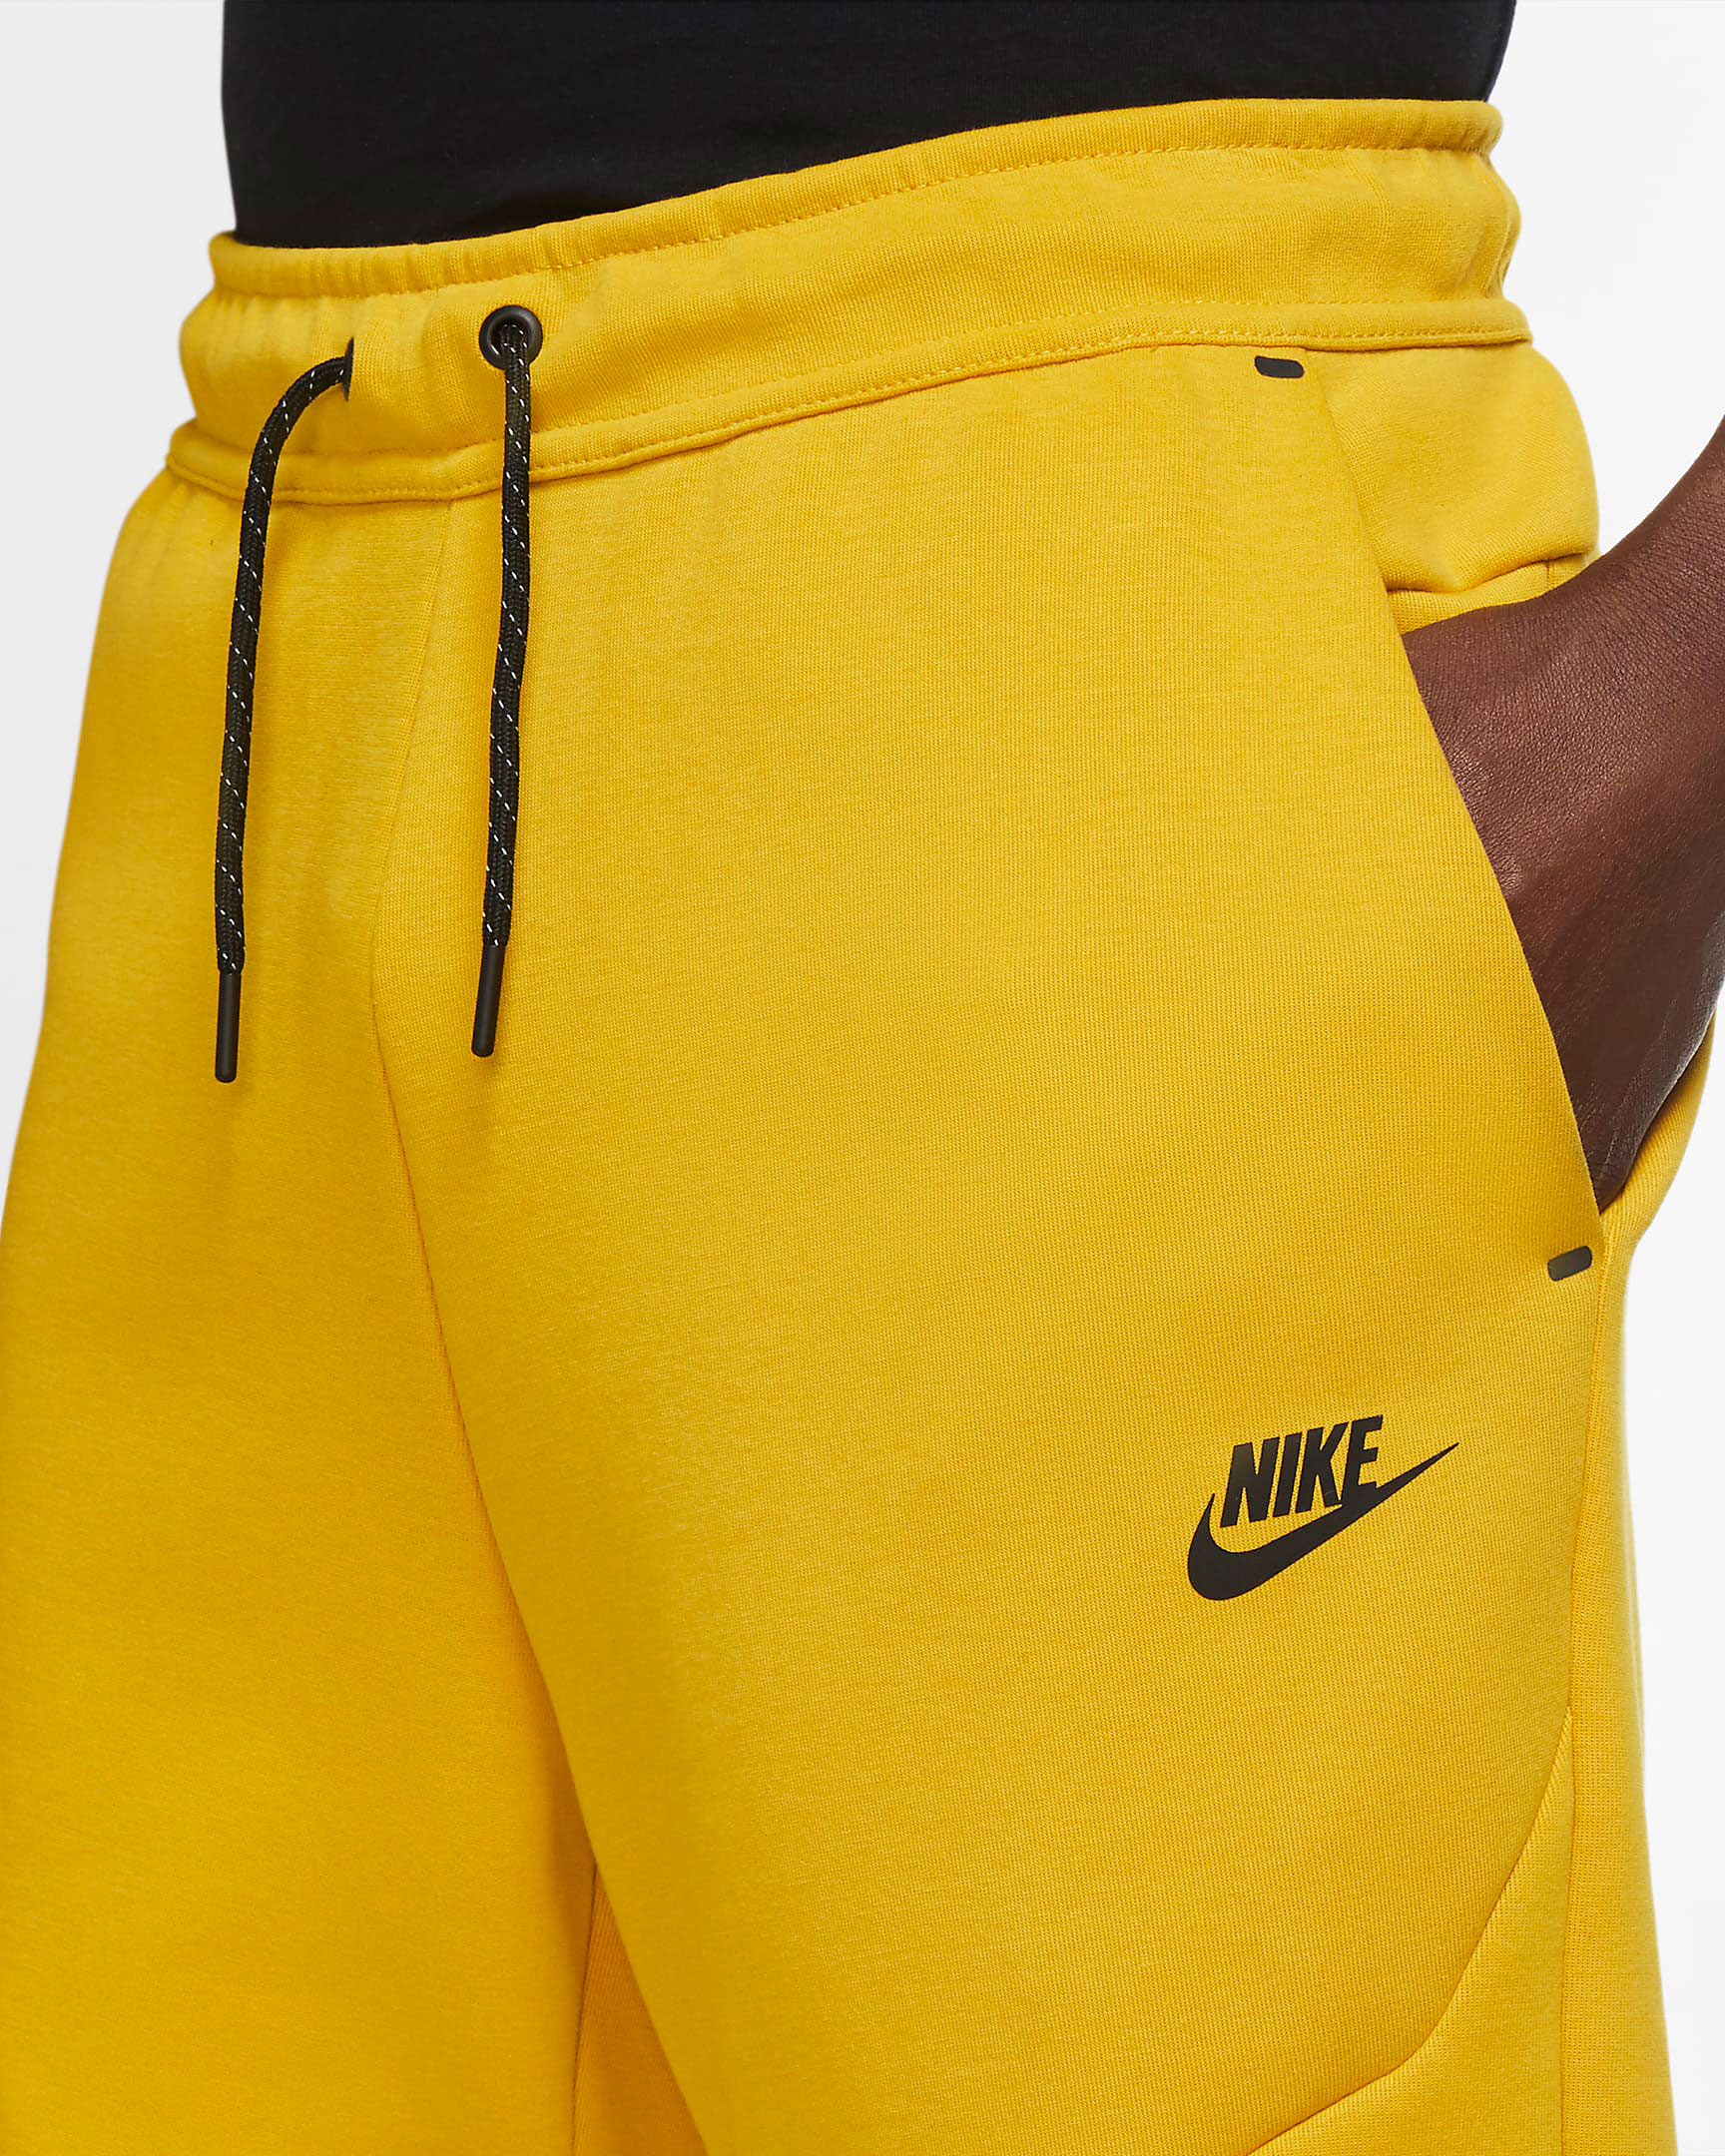 nike-dunk-high-varsity-maize-yellow-black-jogger-pants-2